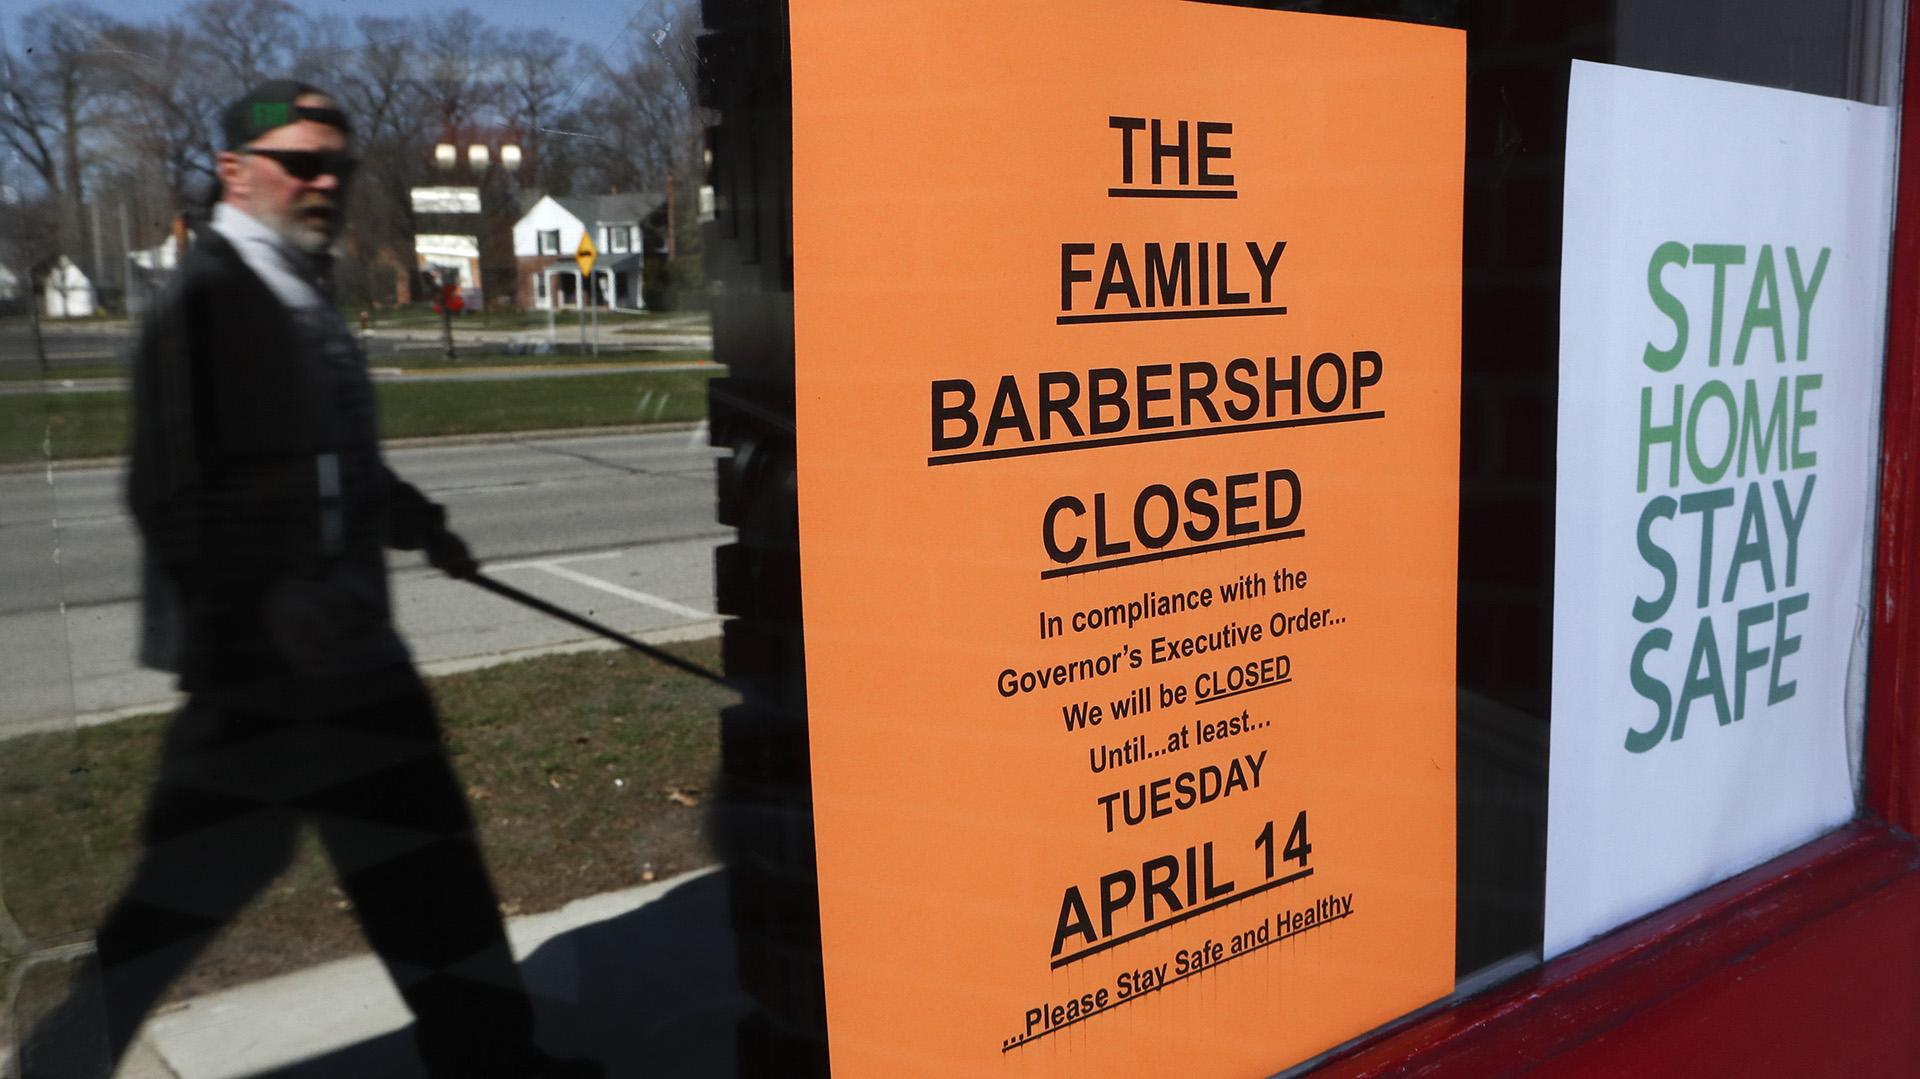 A pedestrian walks by The Family Barbershop, closed due to a Gov. Gretchen Whitmer executive order, in Grosse Pointe Woods, Mich., Thursday, April 2, 2020. (AP Photo / Paul Sancya)